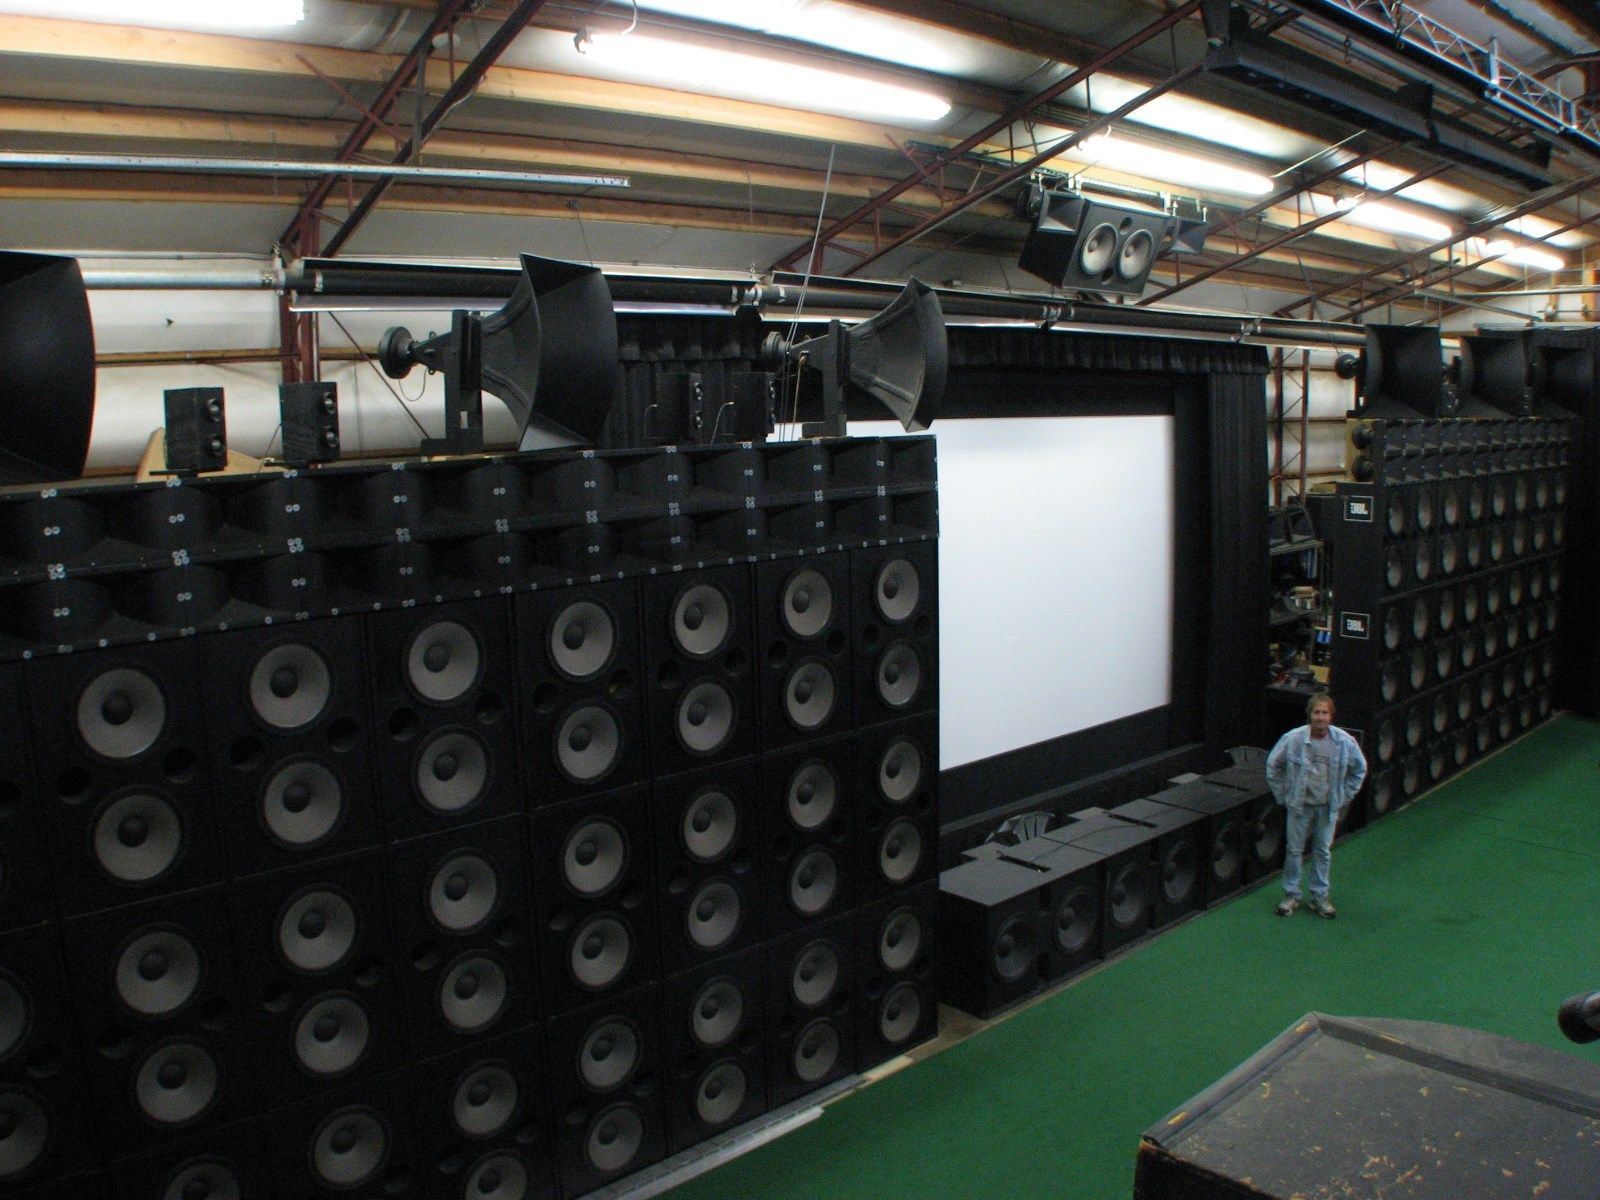 Worlds Largest Jbl Sound System For Sale On Ebay Decoded